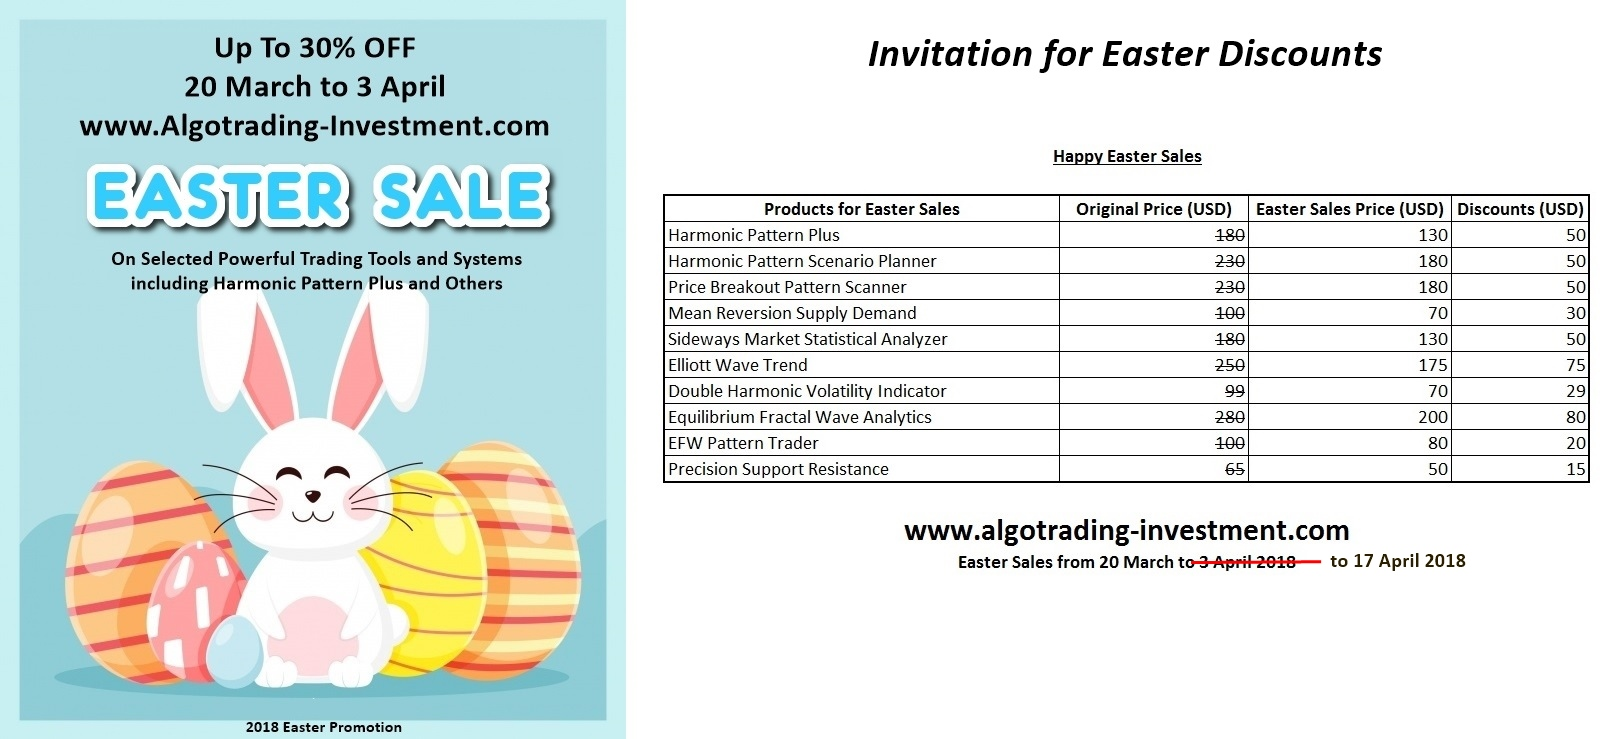 Invitation for Easter Sales at Algotrading-Investment extrended